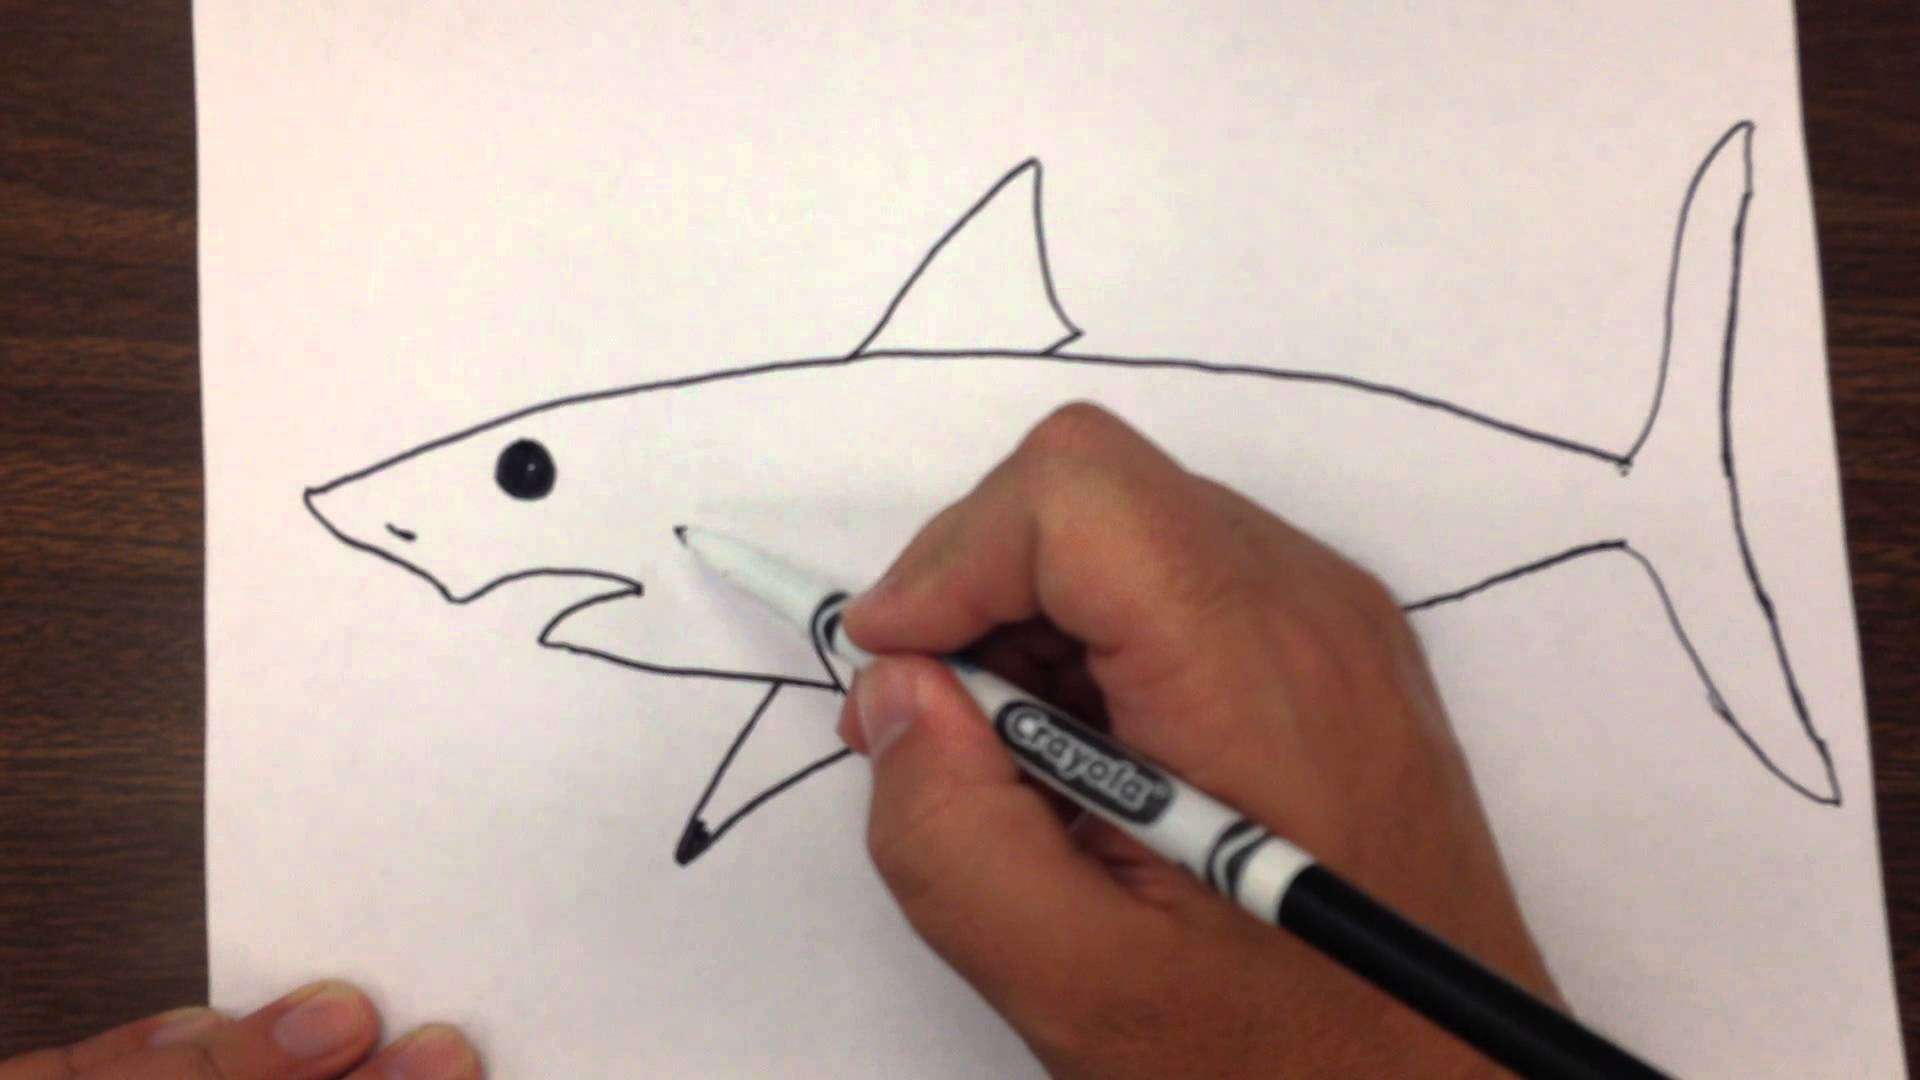 Drawn paper paper step by step #13